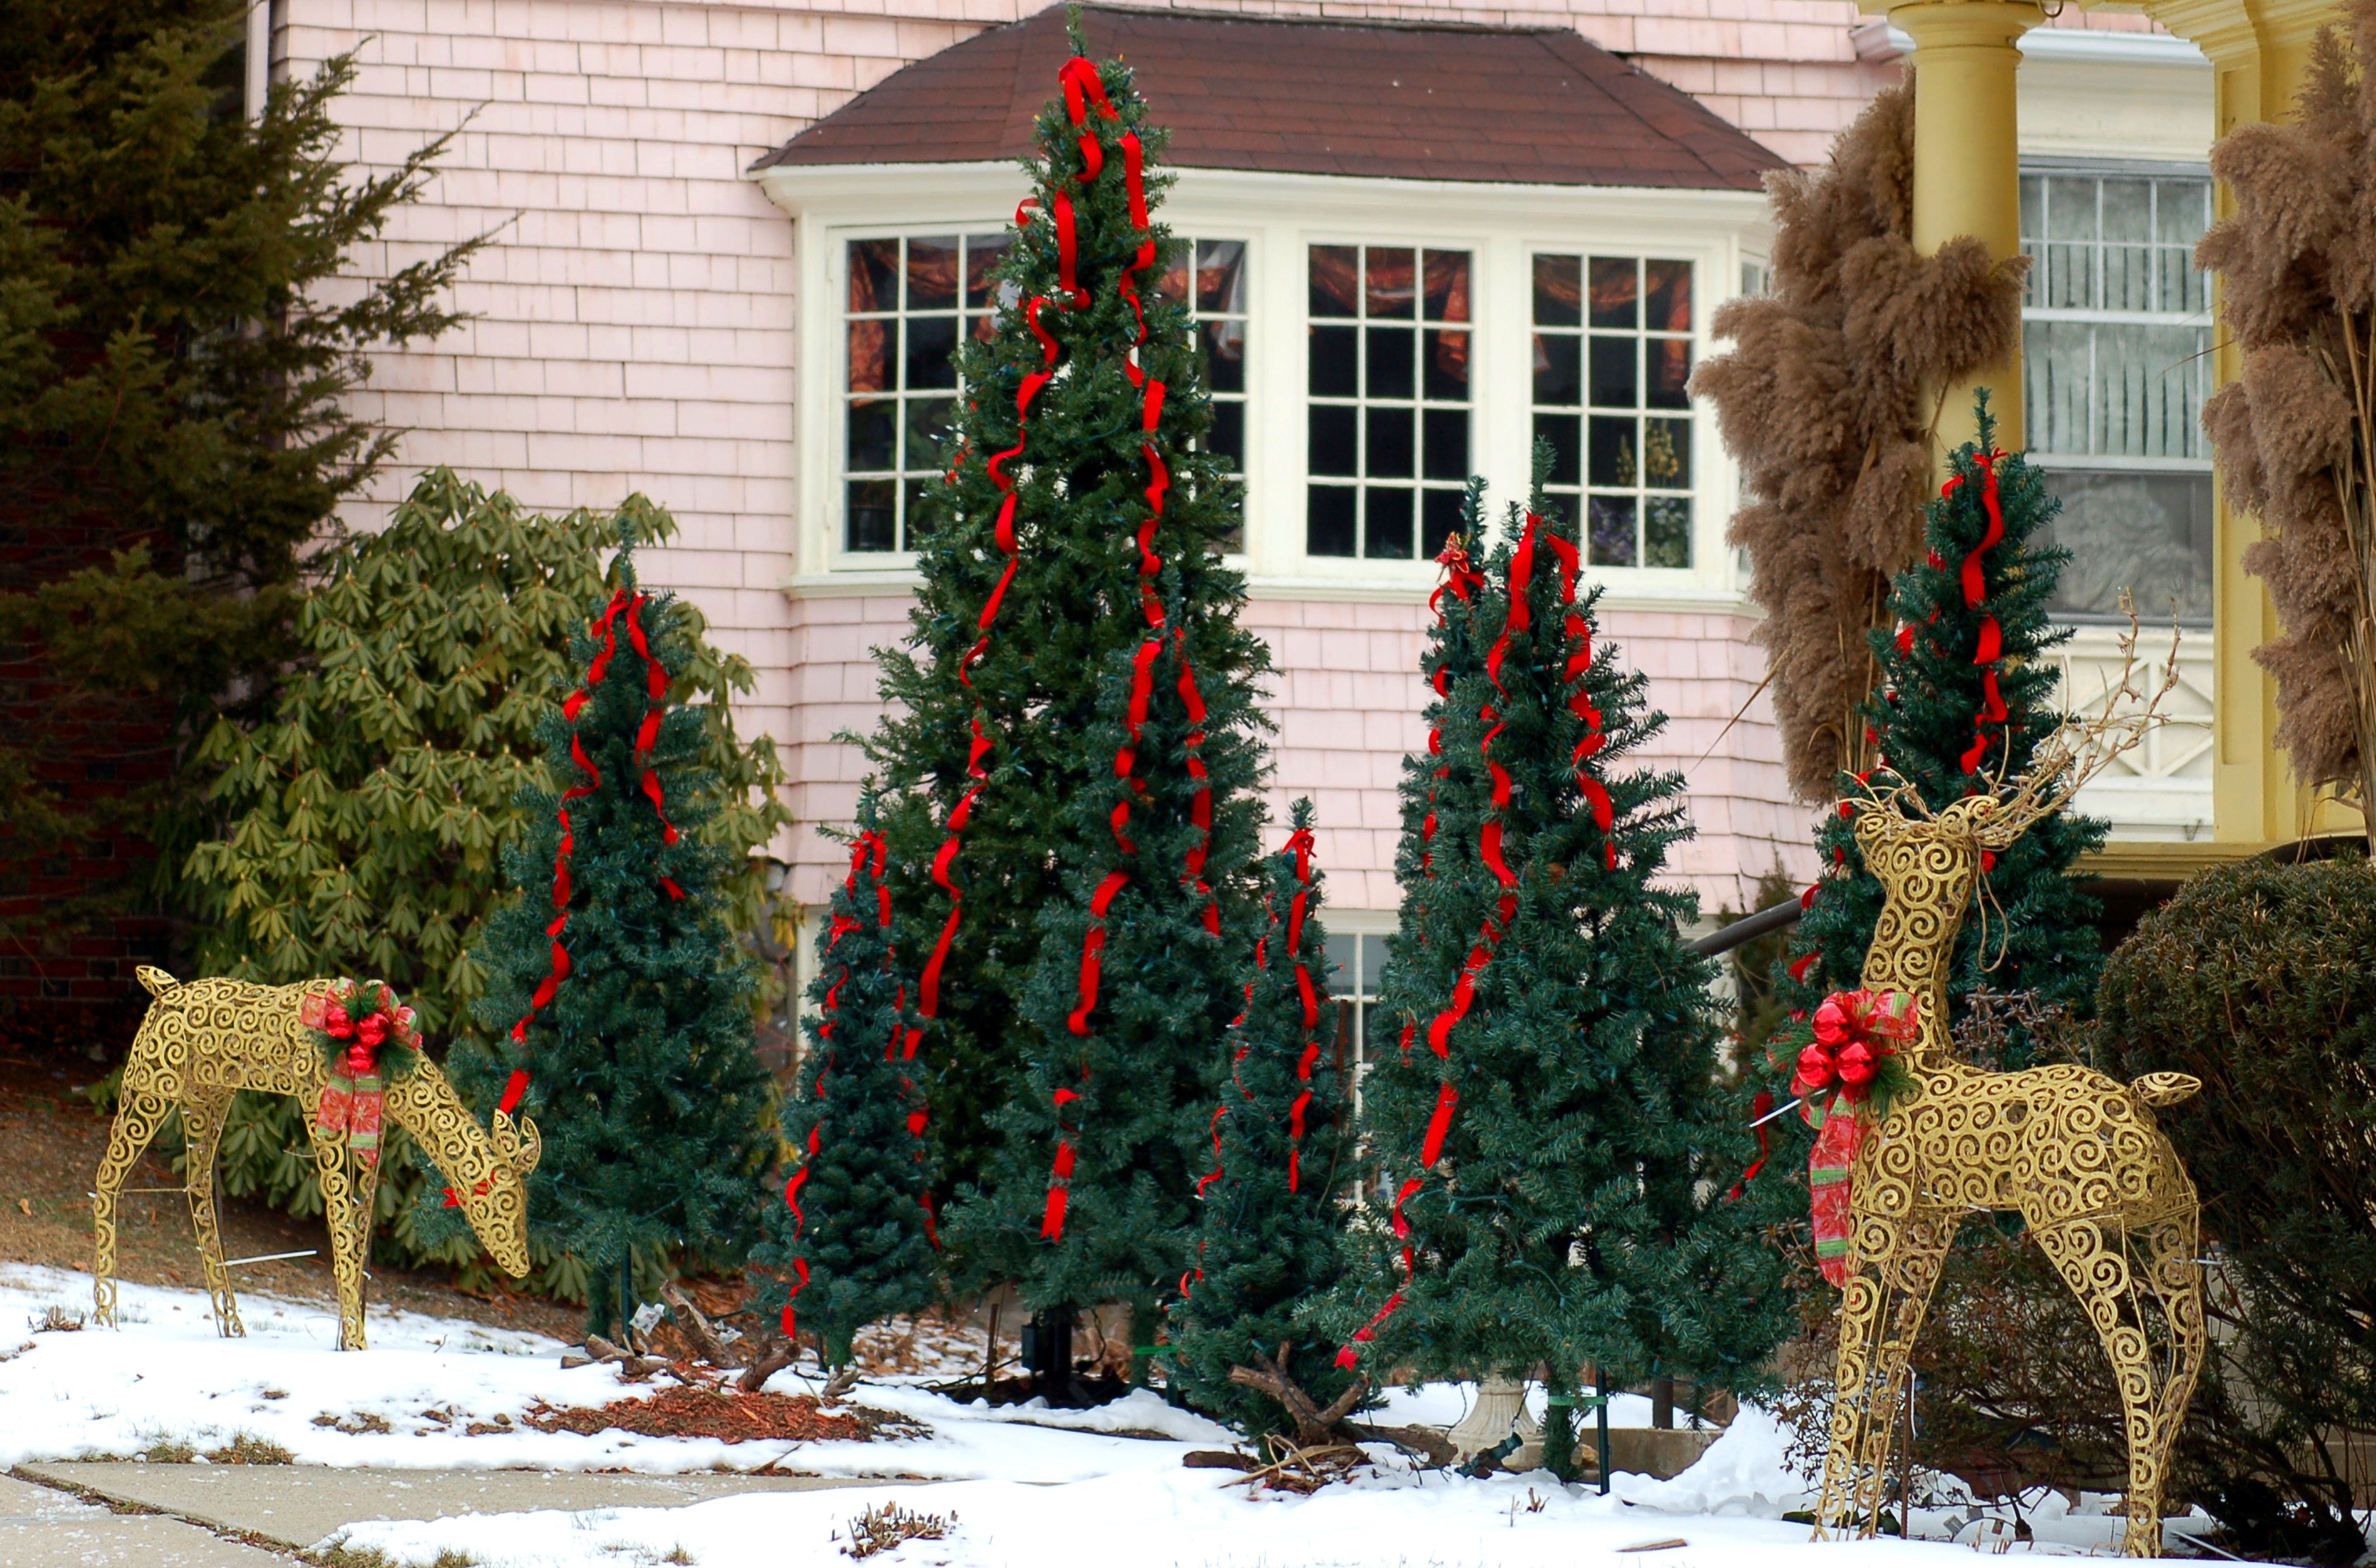 25 outdoor christmas decoration ideas in pictures - Christmas Fence Decorations